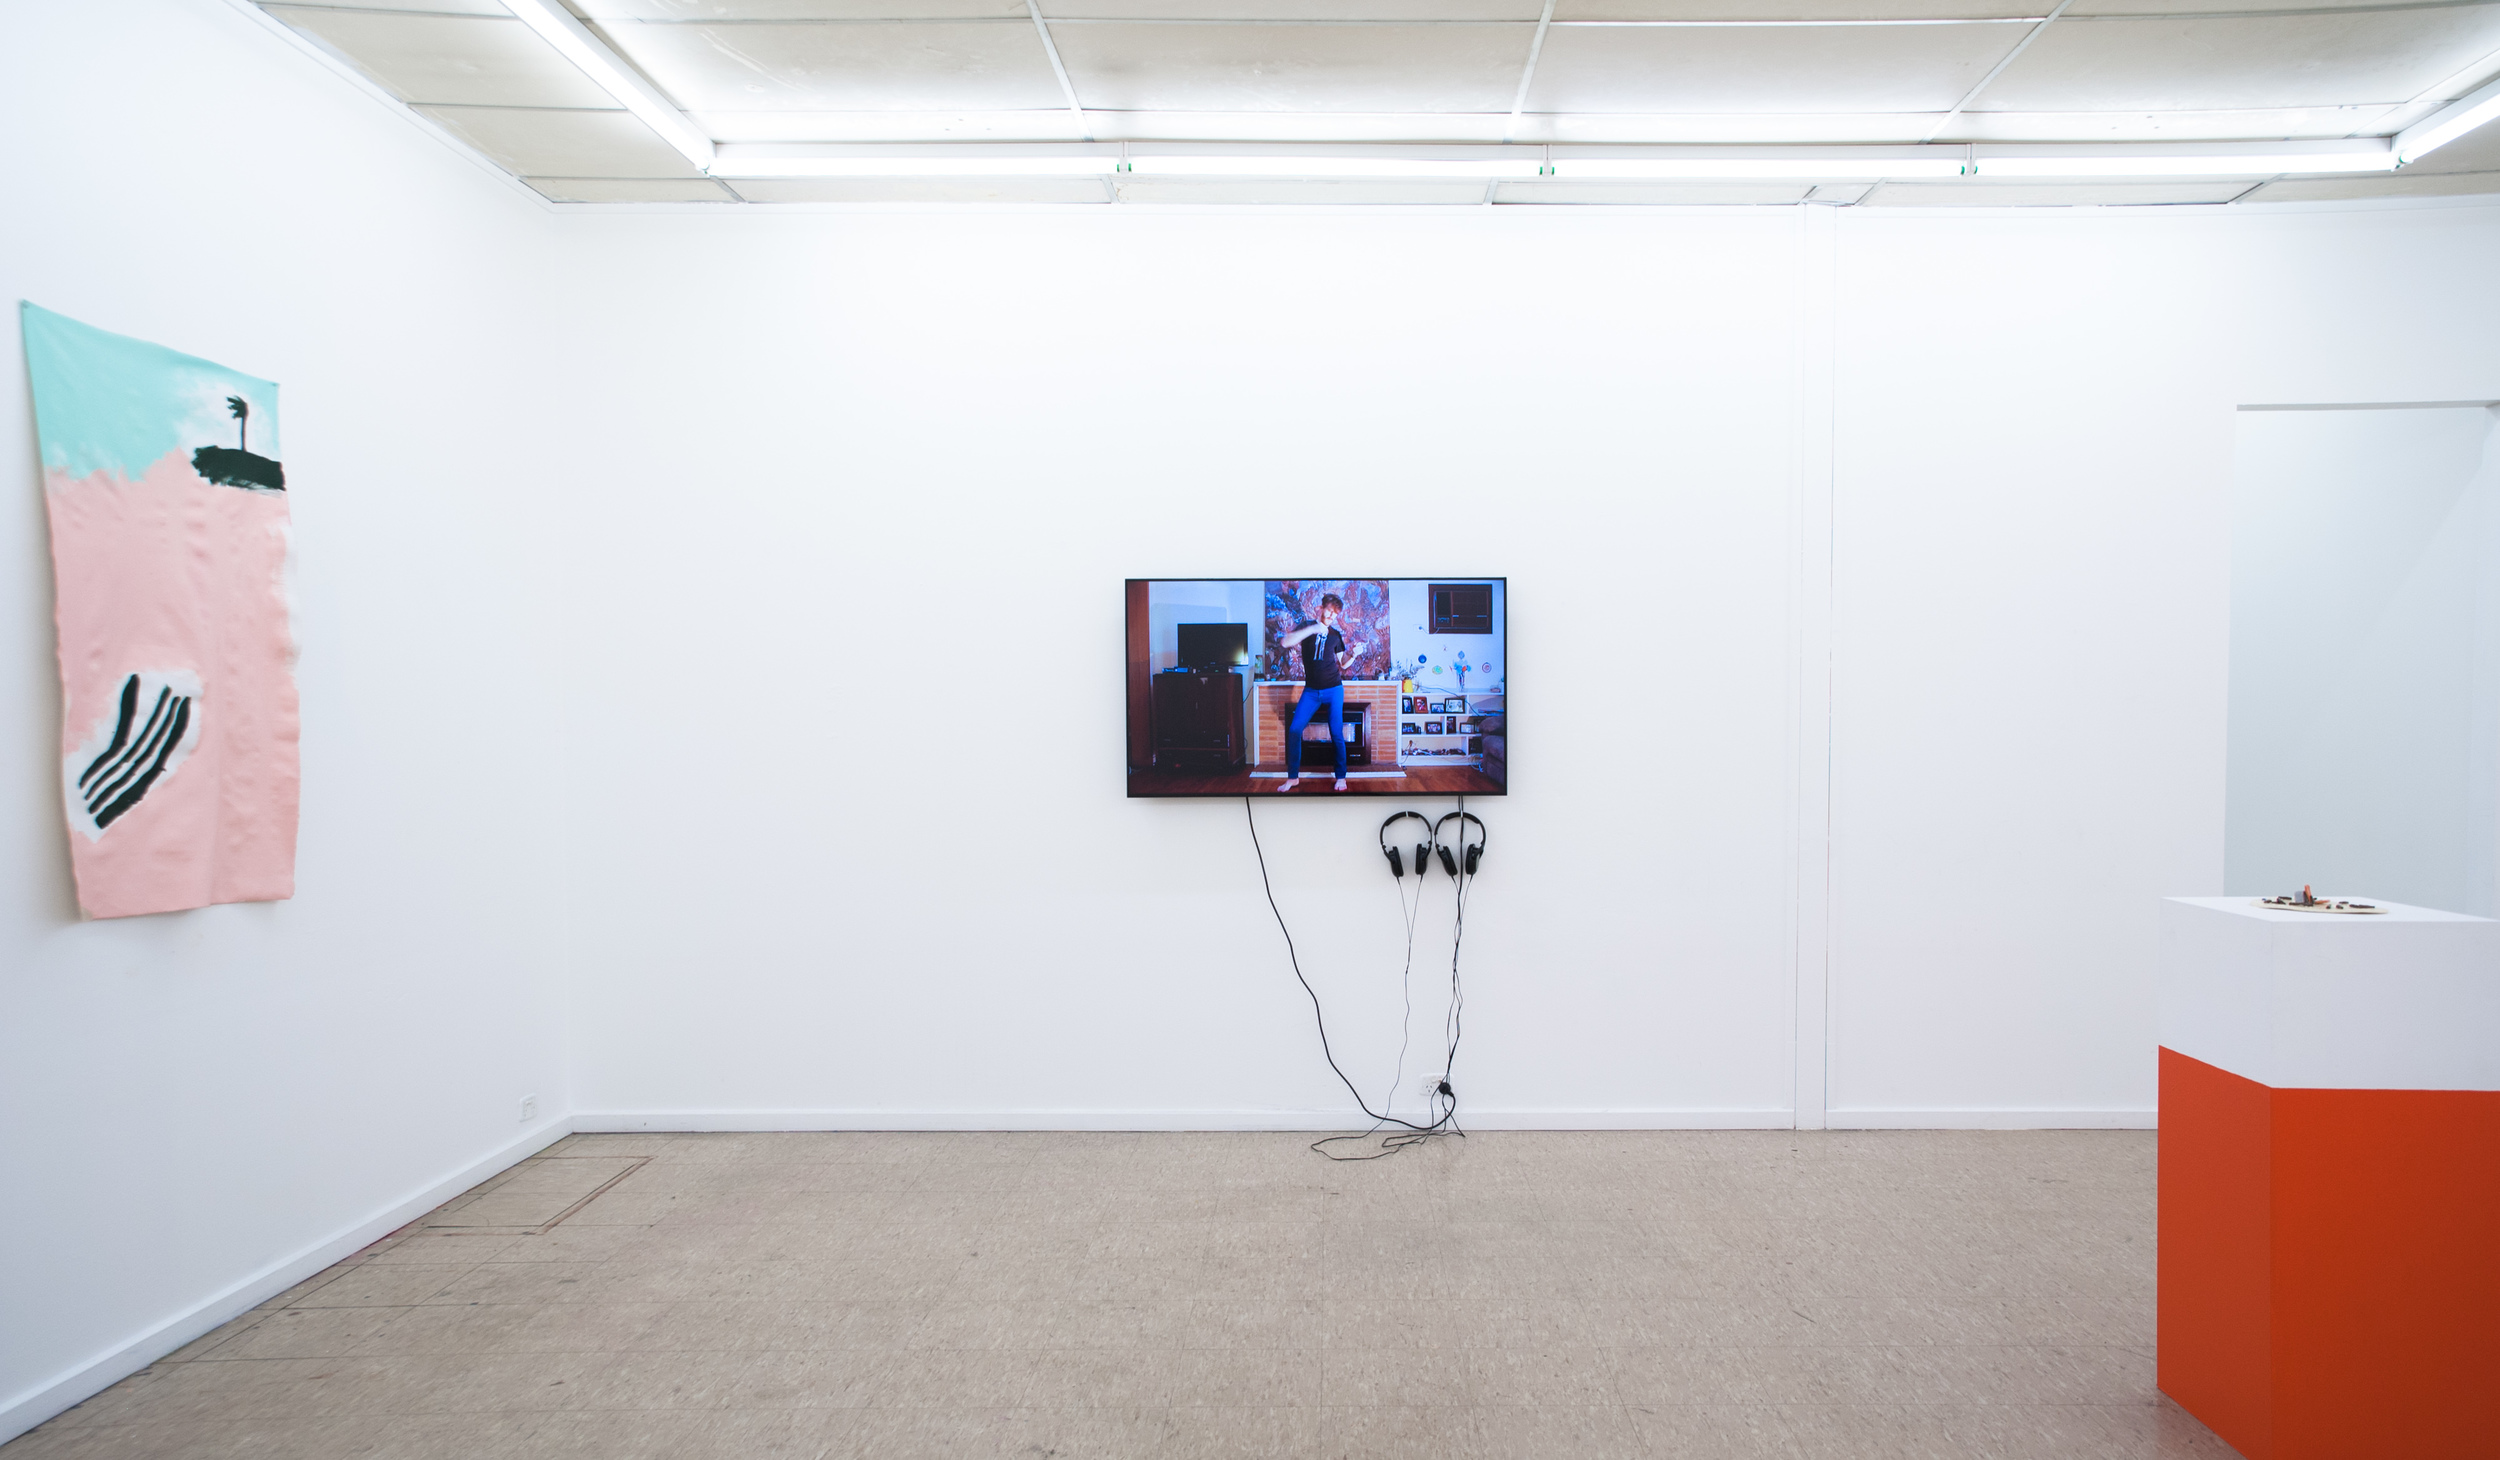 Leisure , 2015, installation view feat. Aida Azin, Luke Wilcox, Meg Wilson (L-R), Fontanelle, photography by Lara Merrington.